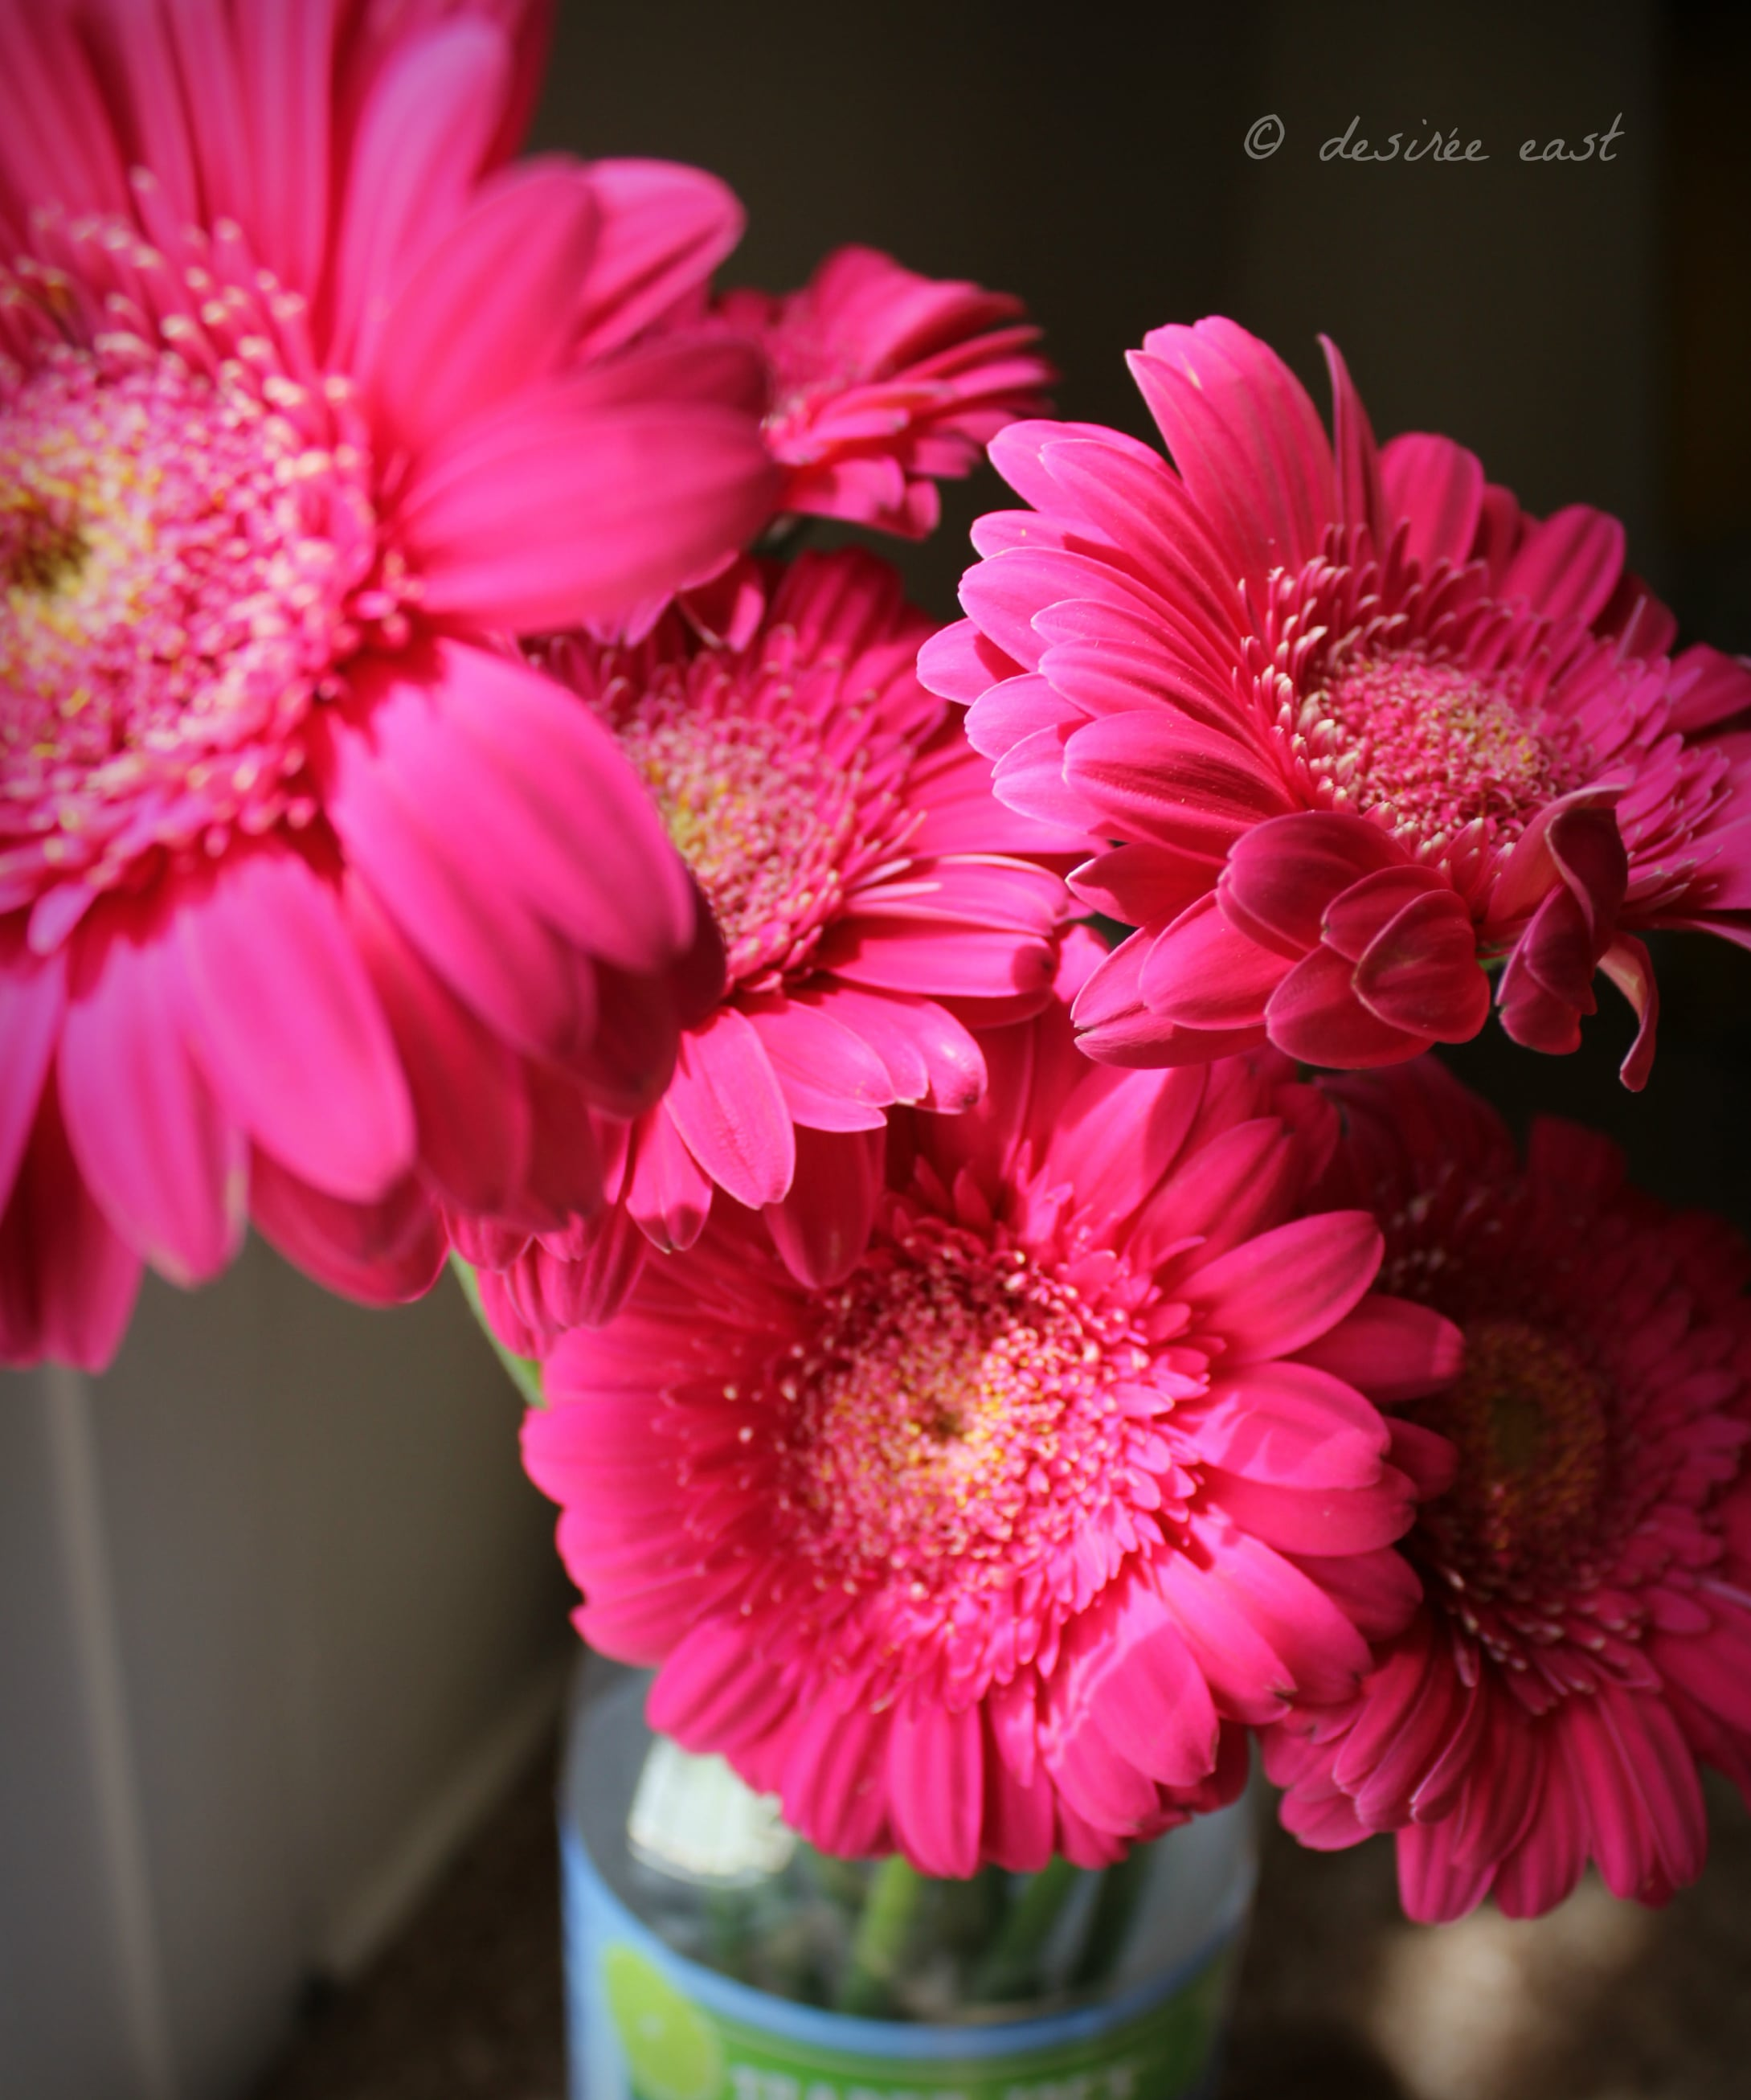 bright, beautiful gerbera daisies. birthday flowers from the hubby. photo by desiree east